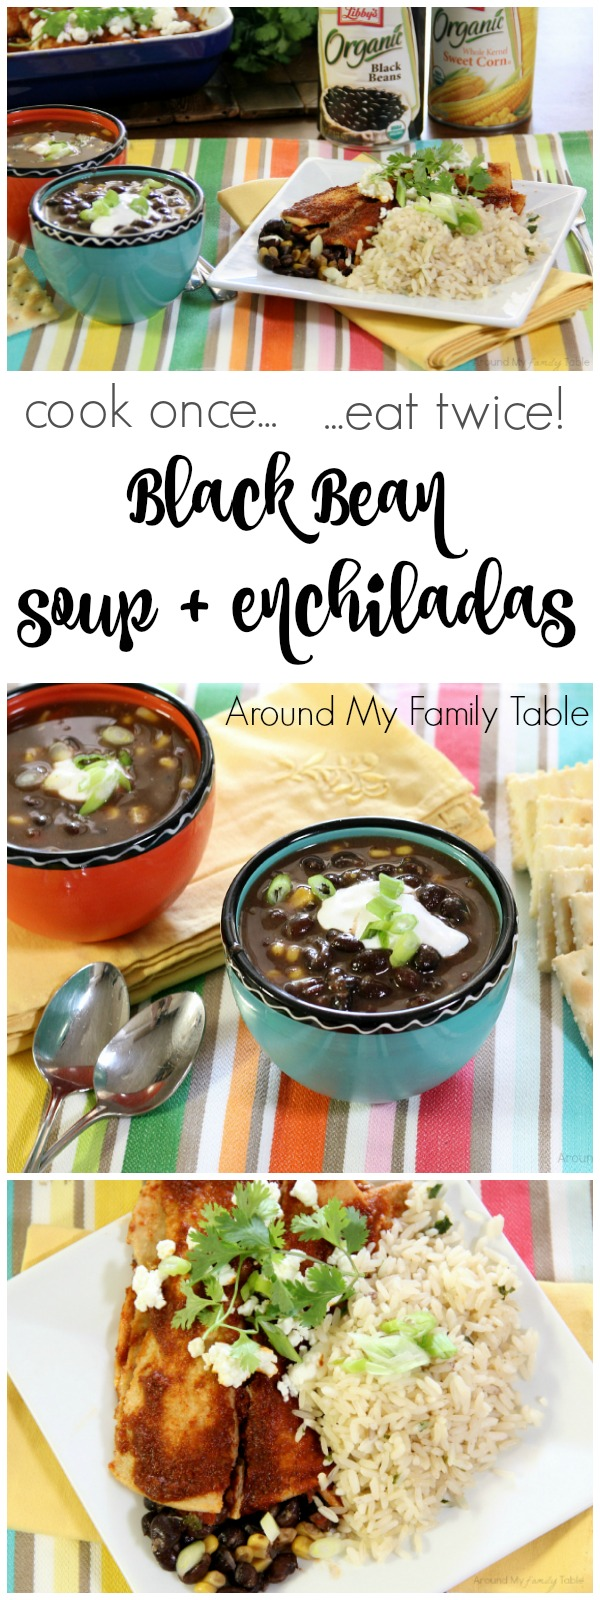 Black bean soup and black bean enchiladas, both made from the same recipe. You can cook once and eat twice!